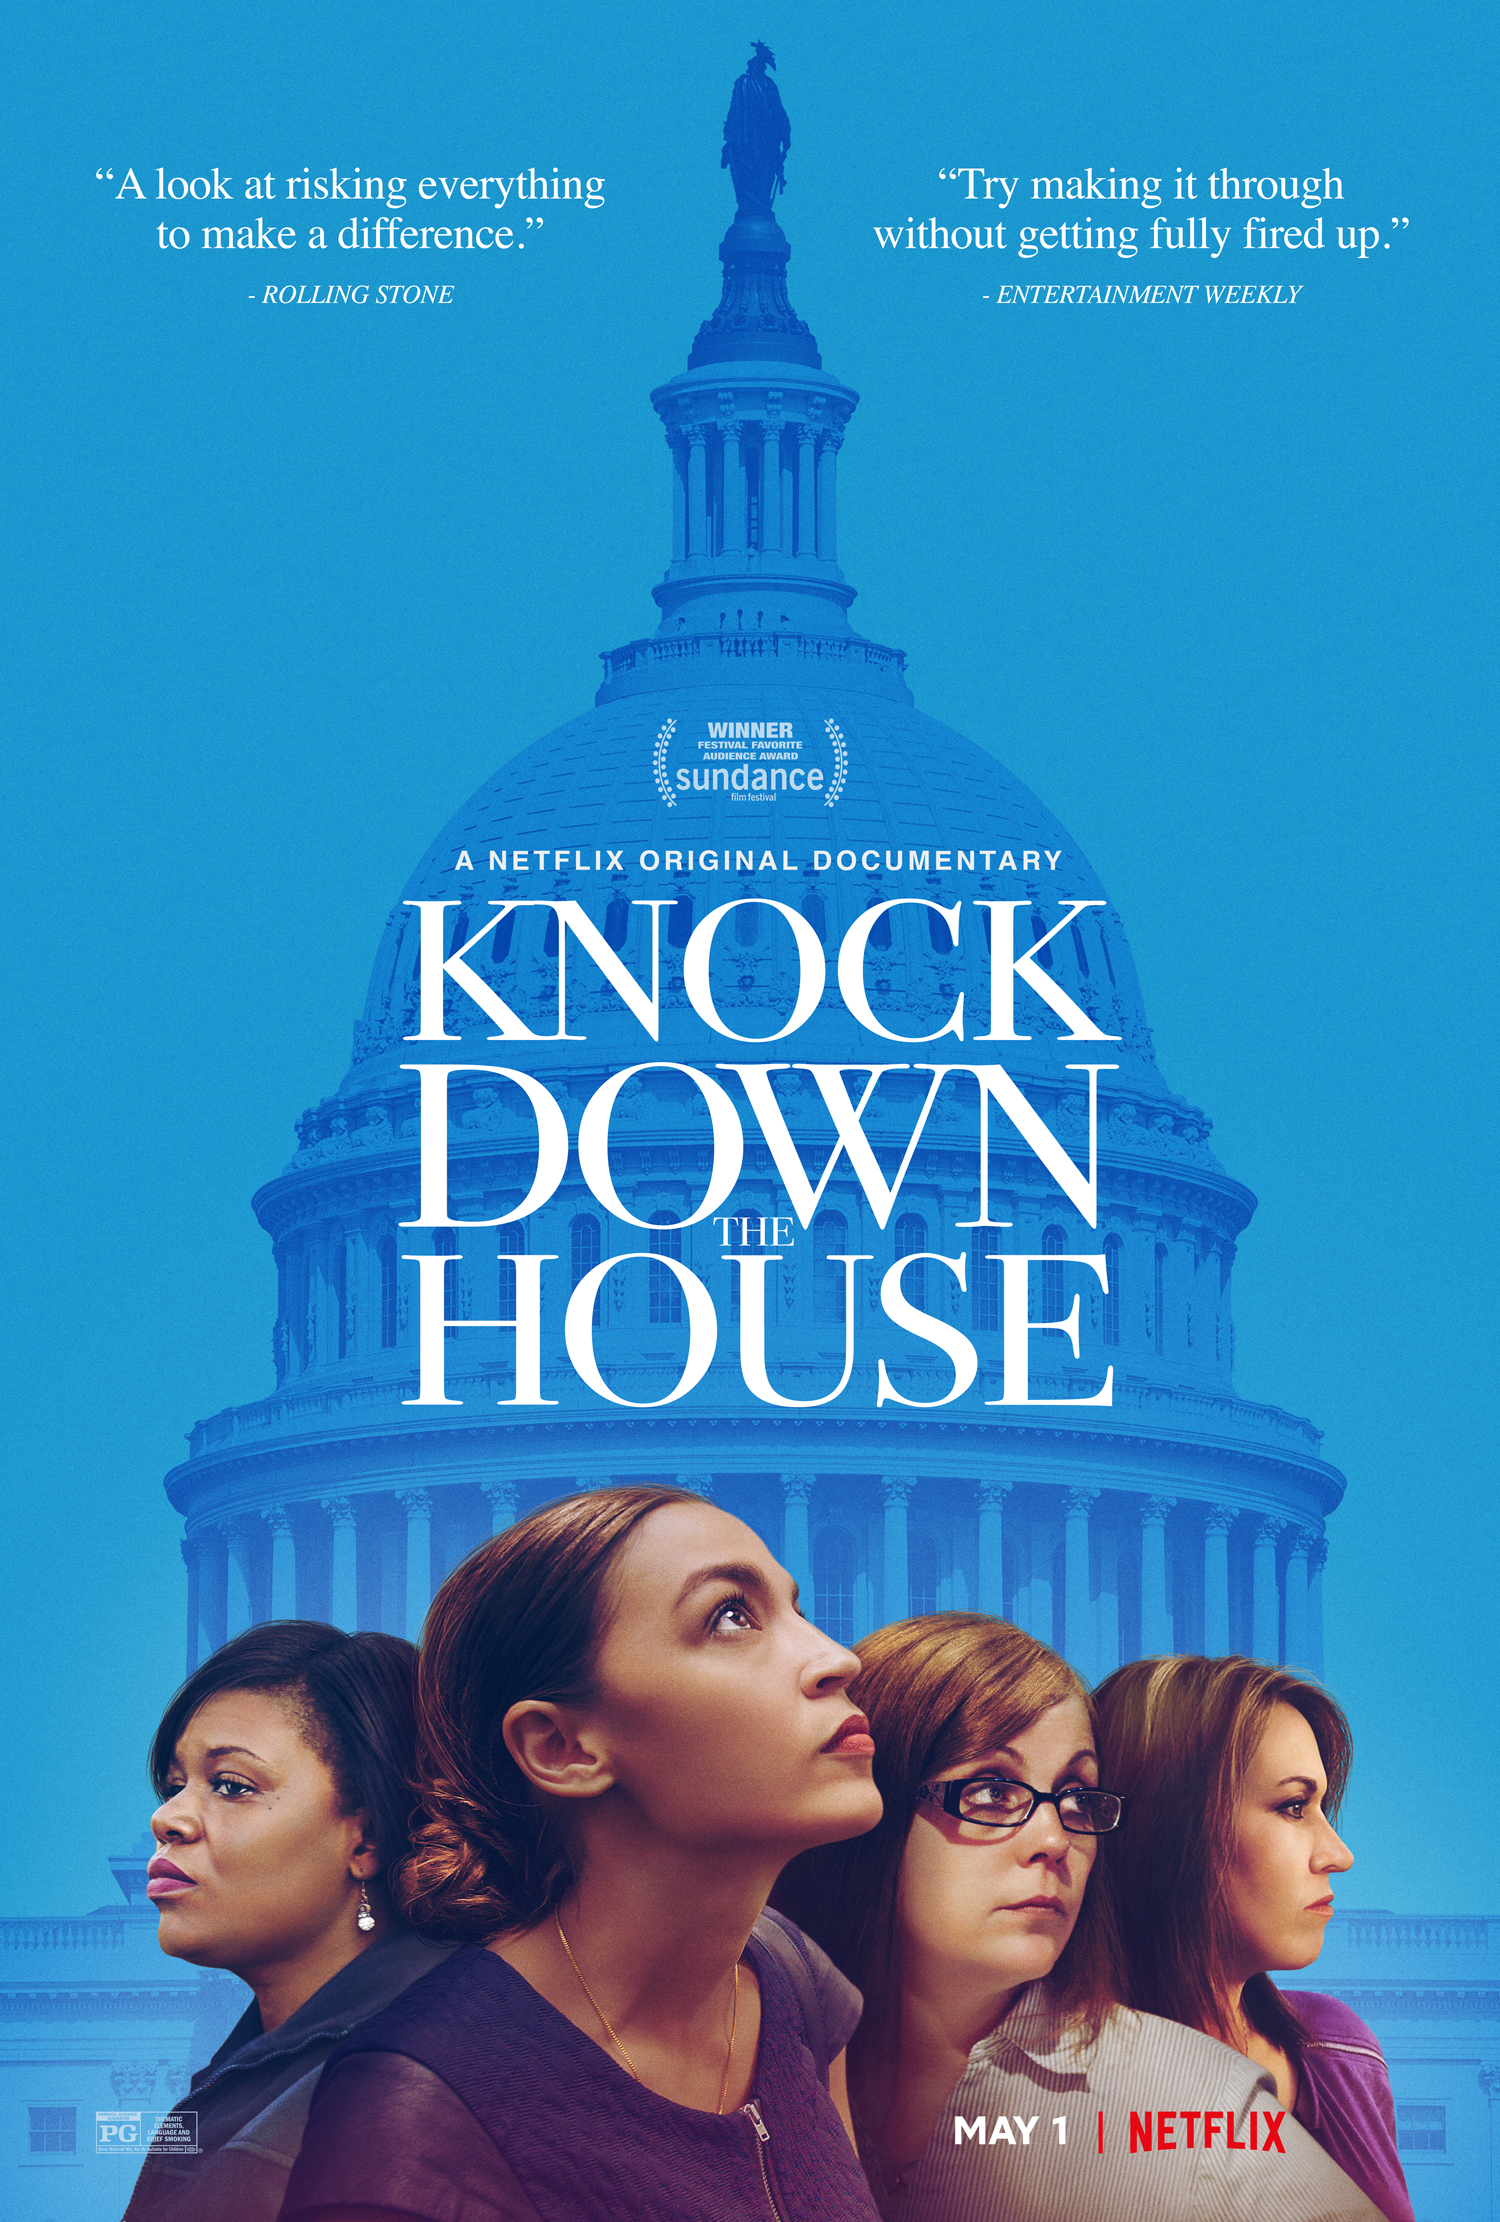 Knock Down the House (2019) - Directed By: Rachel LearsStarring: Alexandria Ocasio-Cortez, Cori Bush, Joe CrowleyRated: PGRun Time: 1h 26mTMM Score: 2 StarsStrengths: Name RecognitionWeakness: Simple, Uninspired